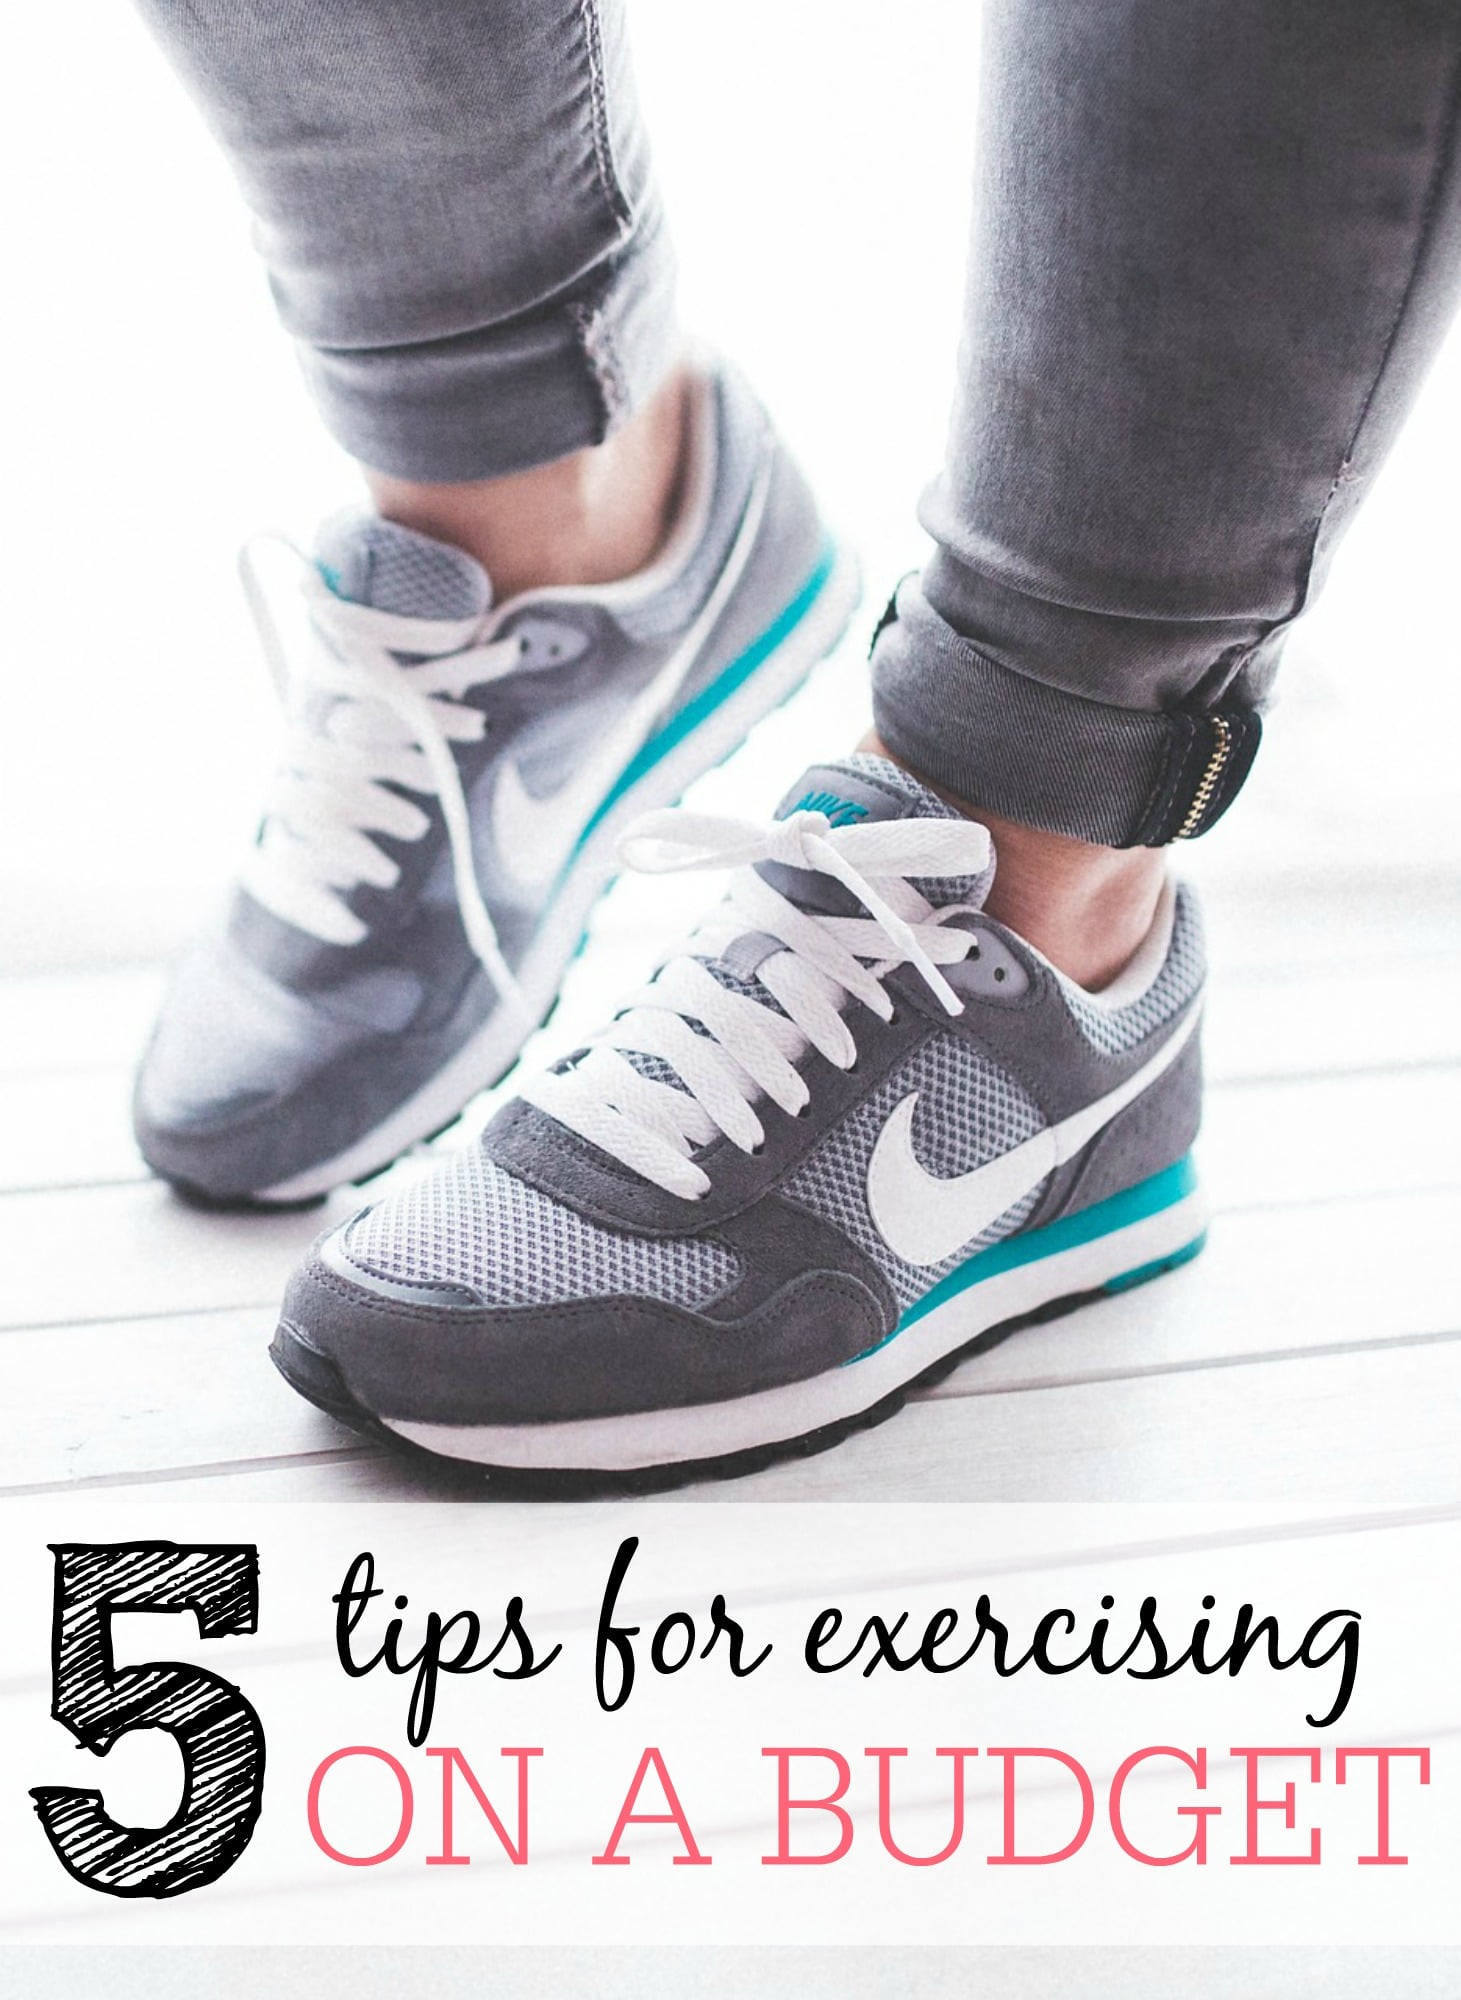 exercise on a budget